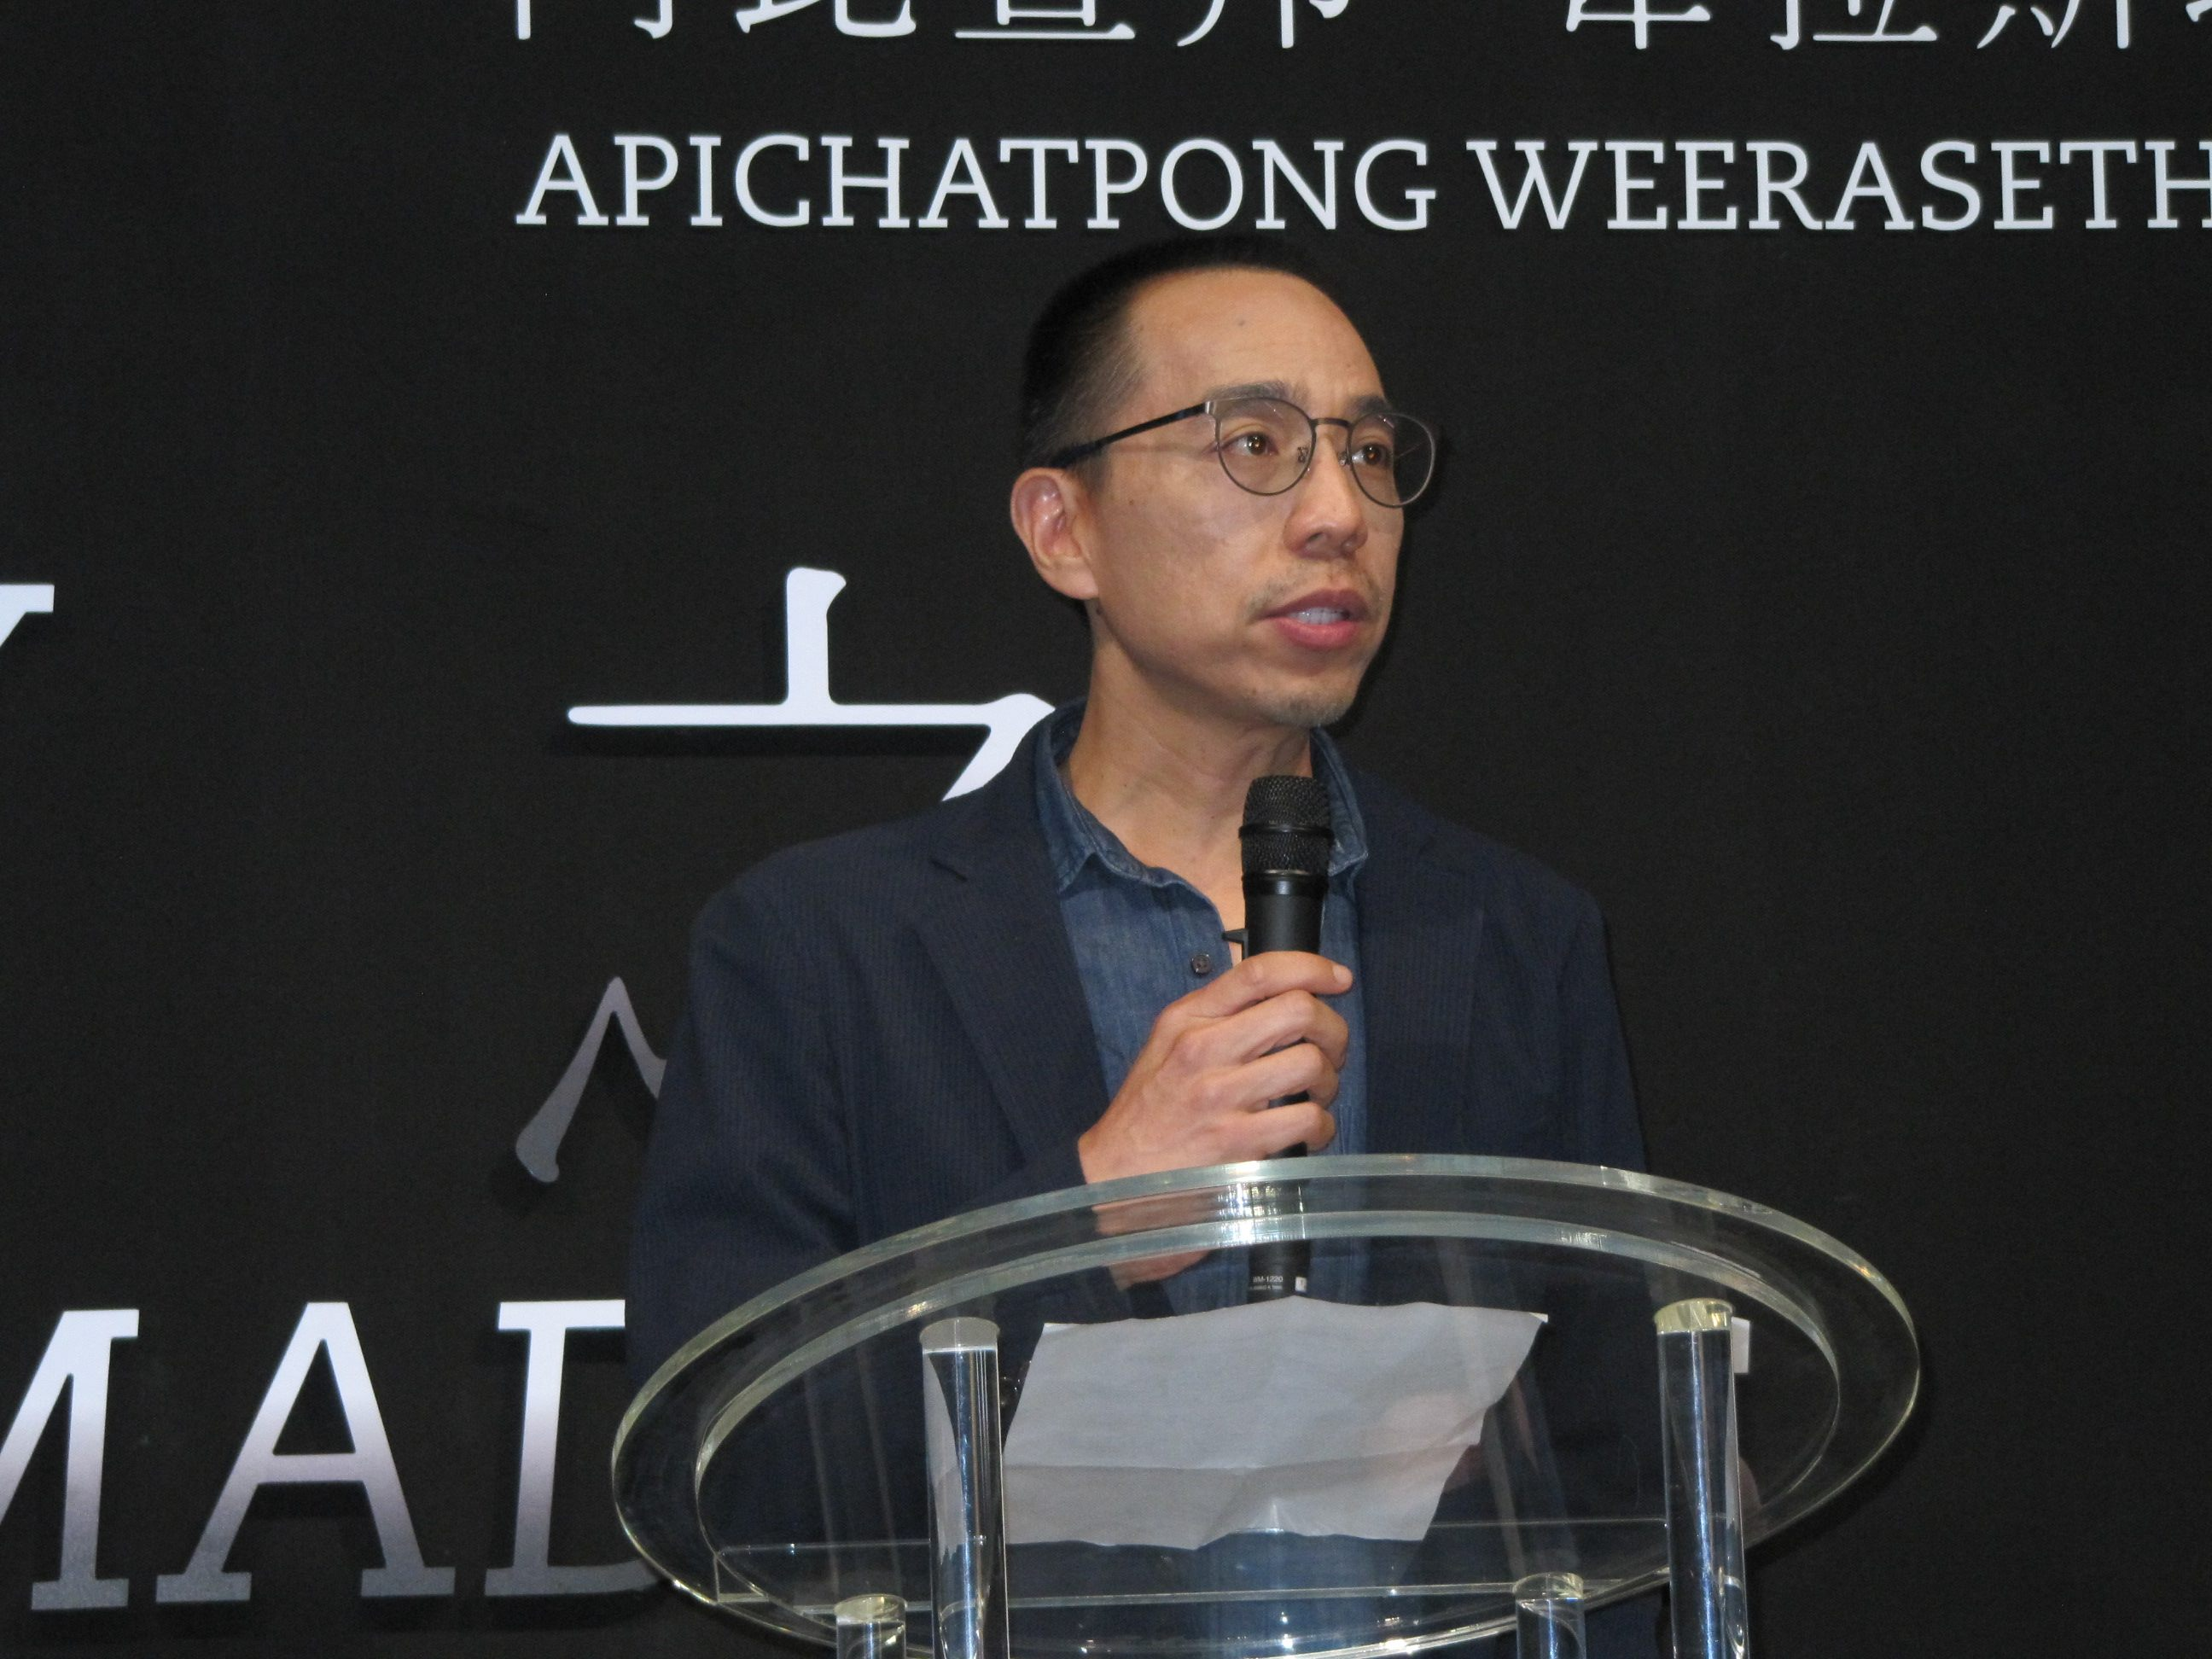 Apichatpong Weerasethakul talks about his art at the press conference